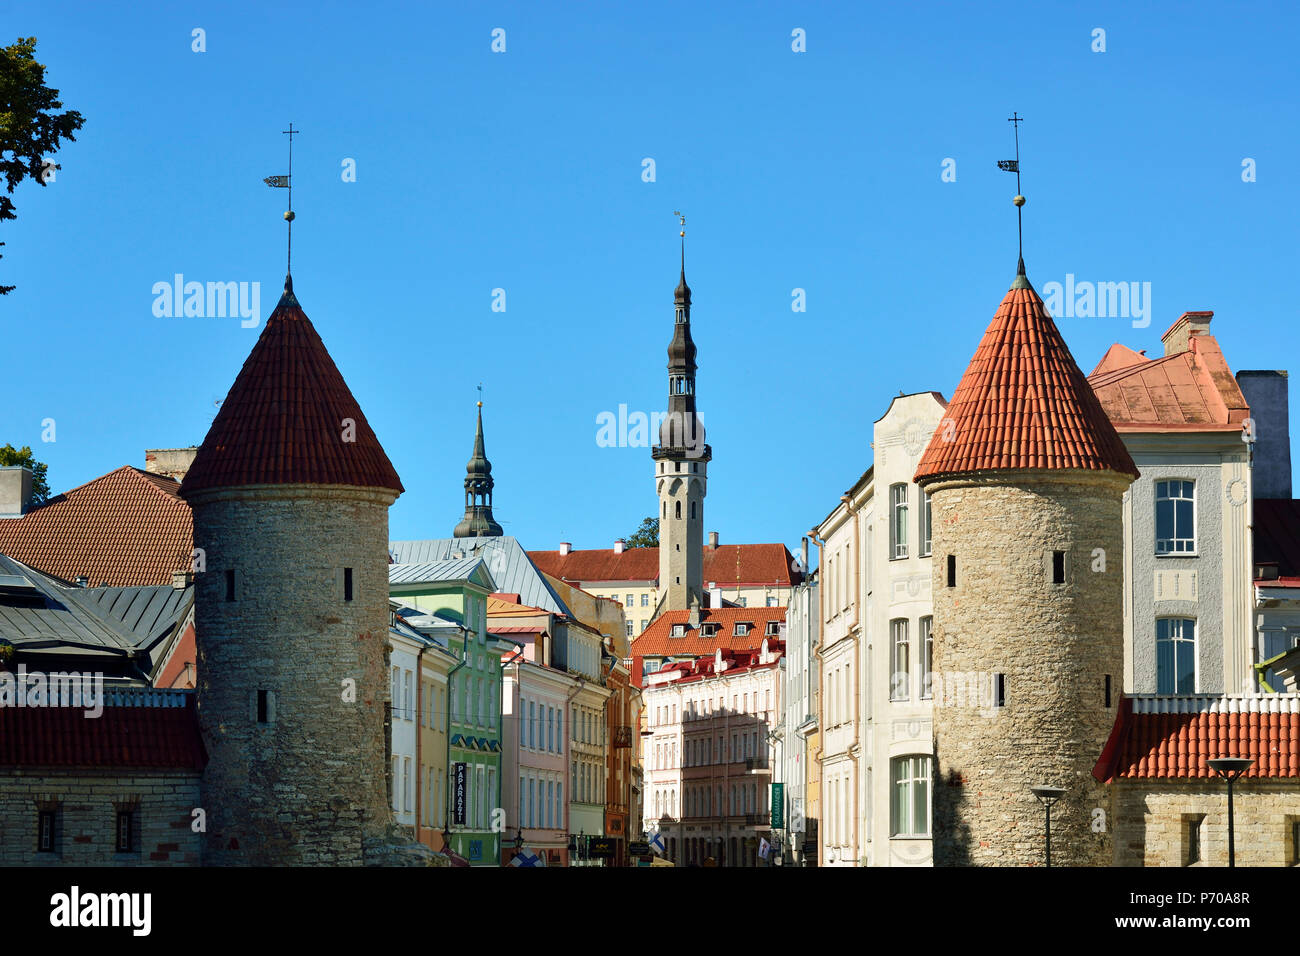 Viru street in the Old Town of Tallinn, a Unesco World Heritage Site. Tallinn, Estonia Stock Photo